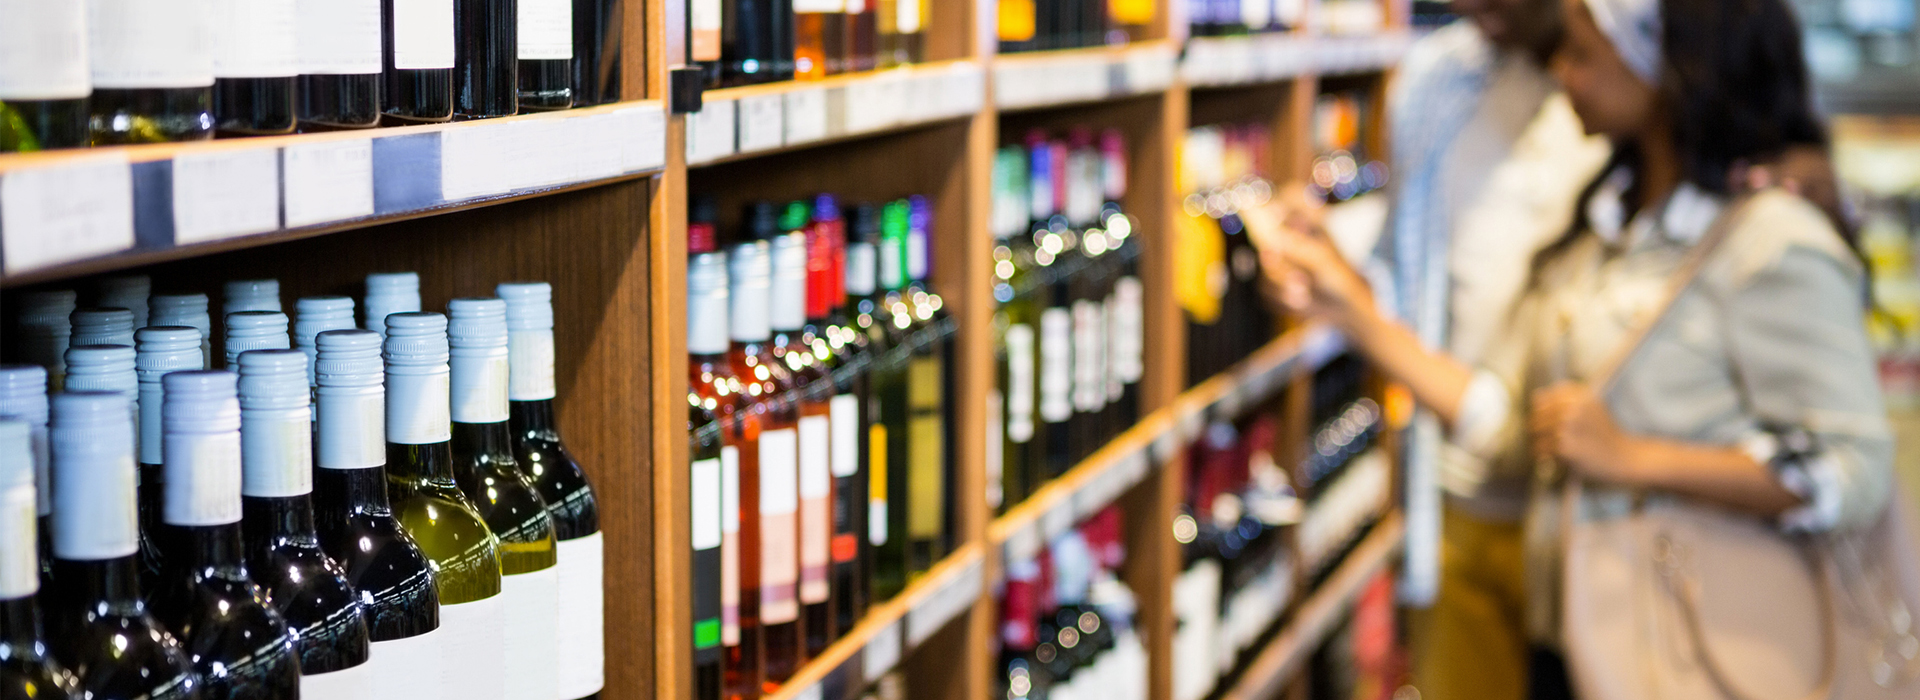 Wine and beverage packaging labels and shelf talker signage in retail setting